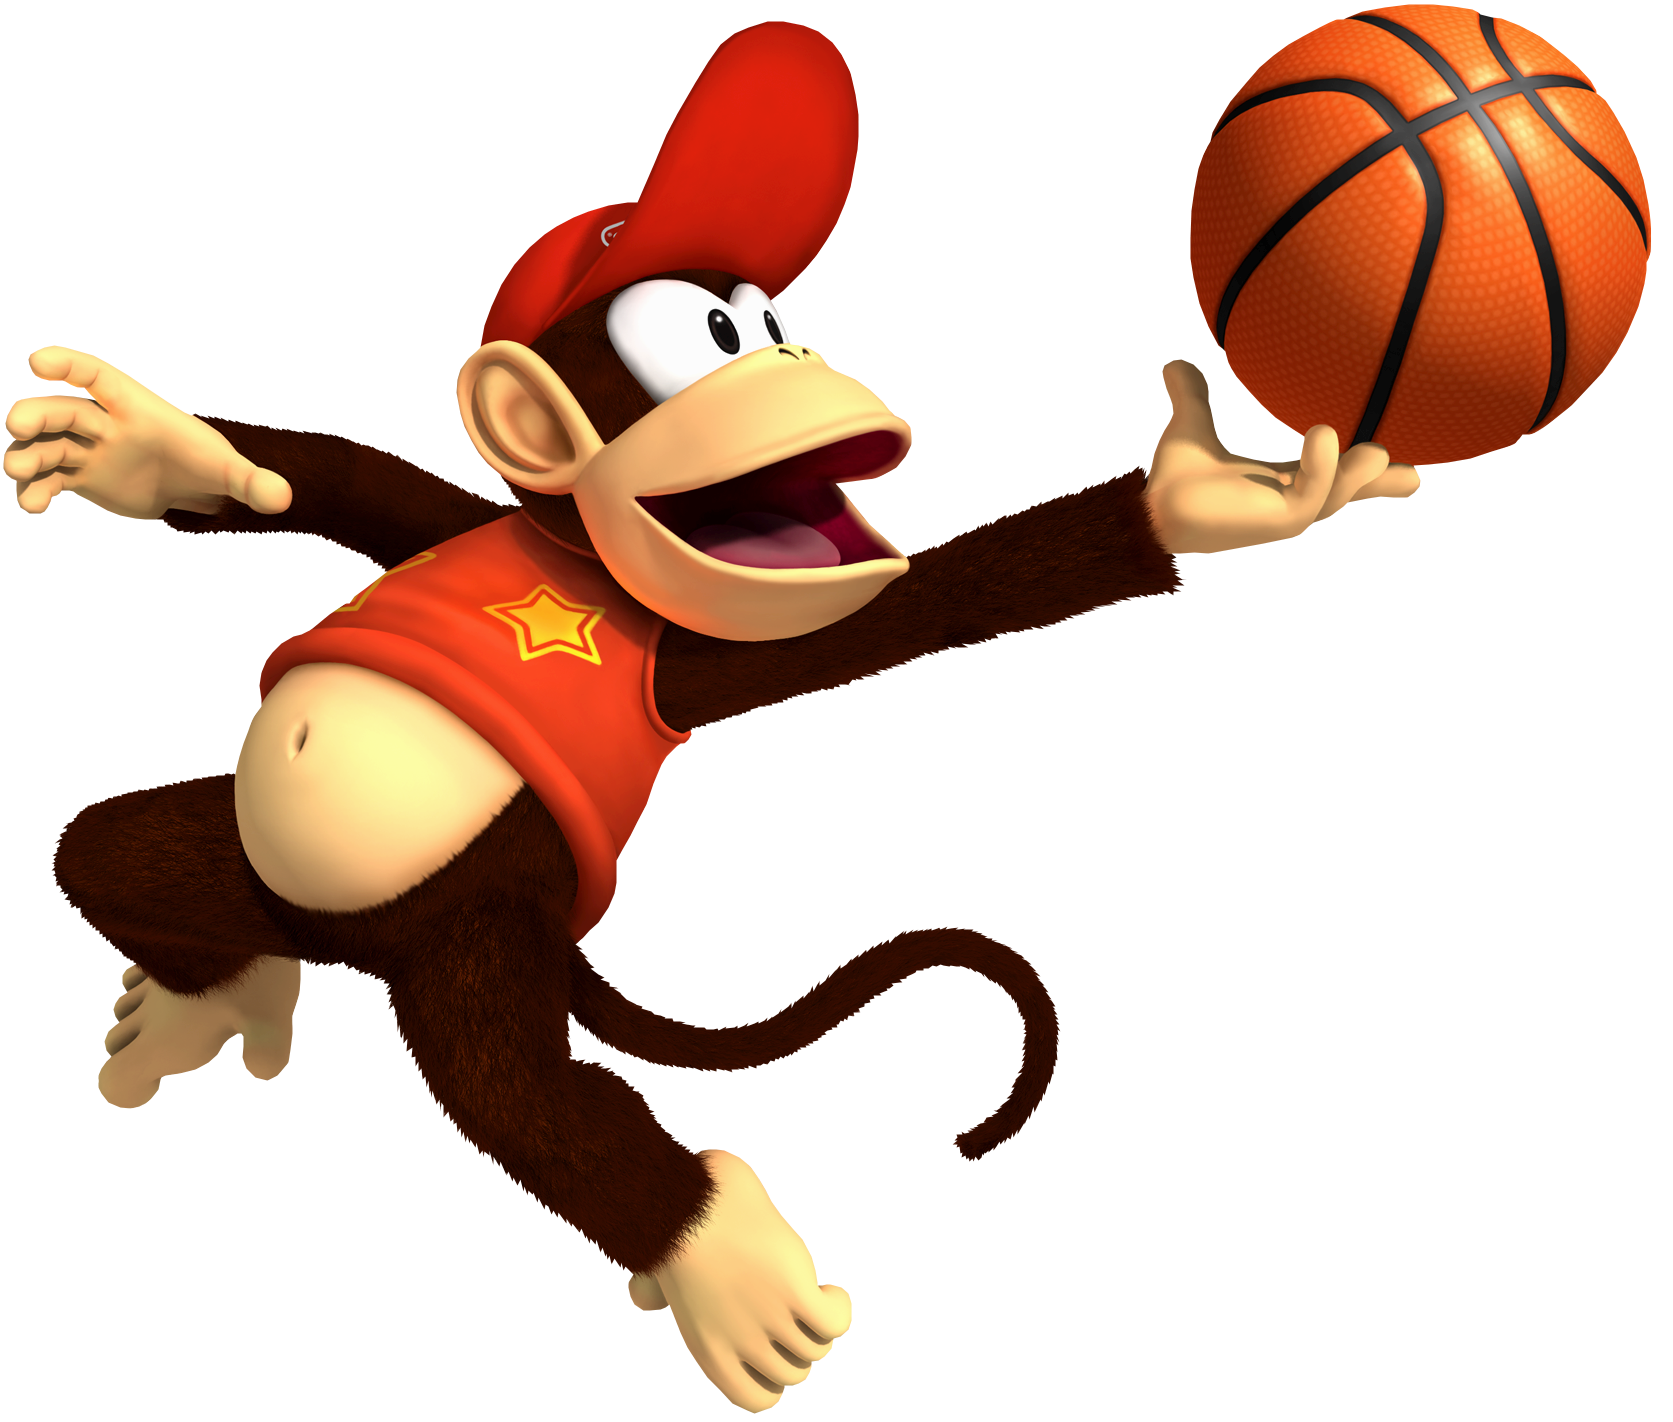 Basketball faceoff clipart vector freeuse stock DK Vine: Diddy Kong's Biography vector freeuse stock